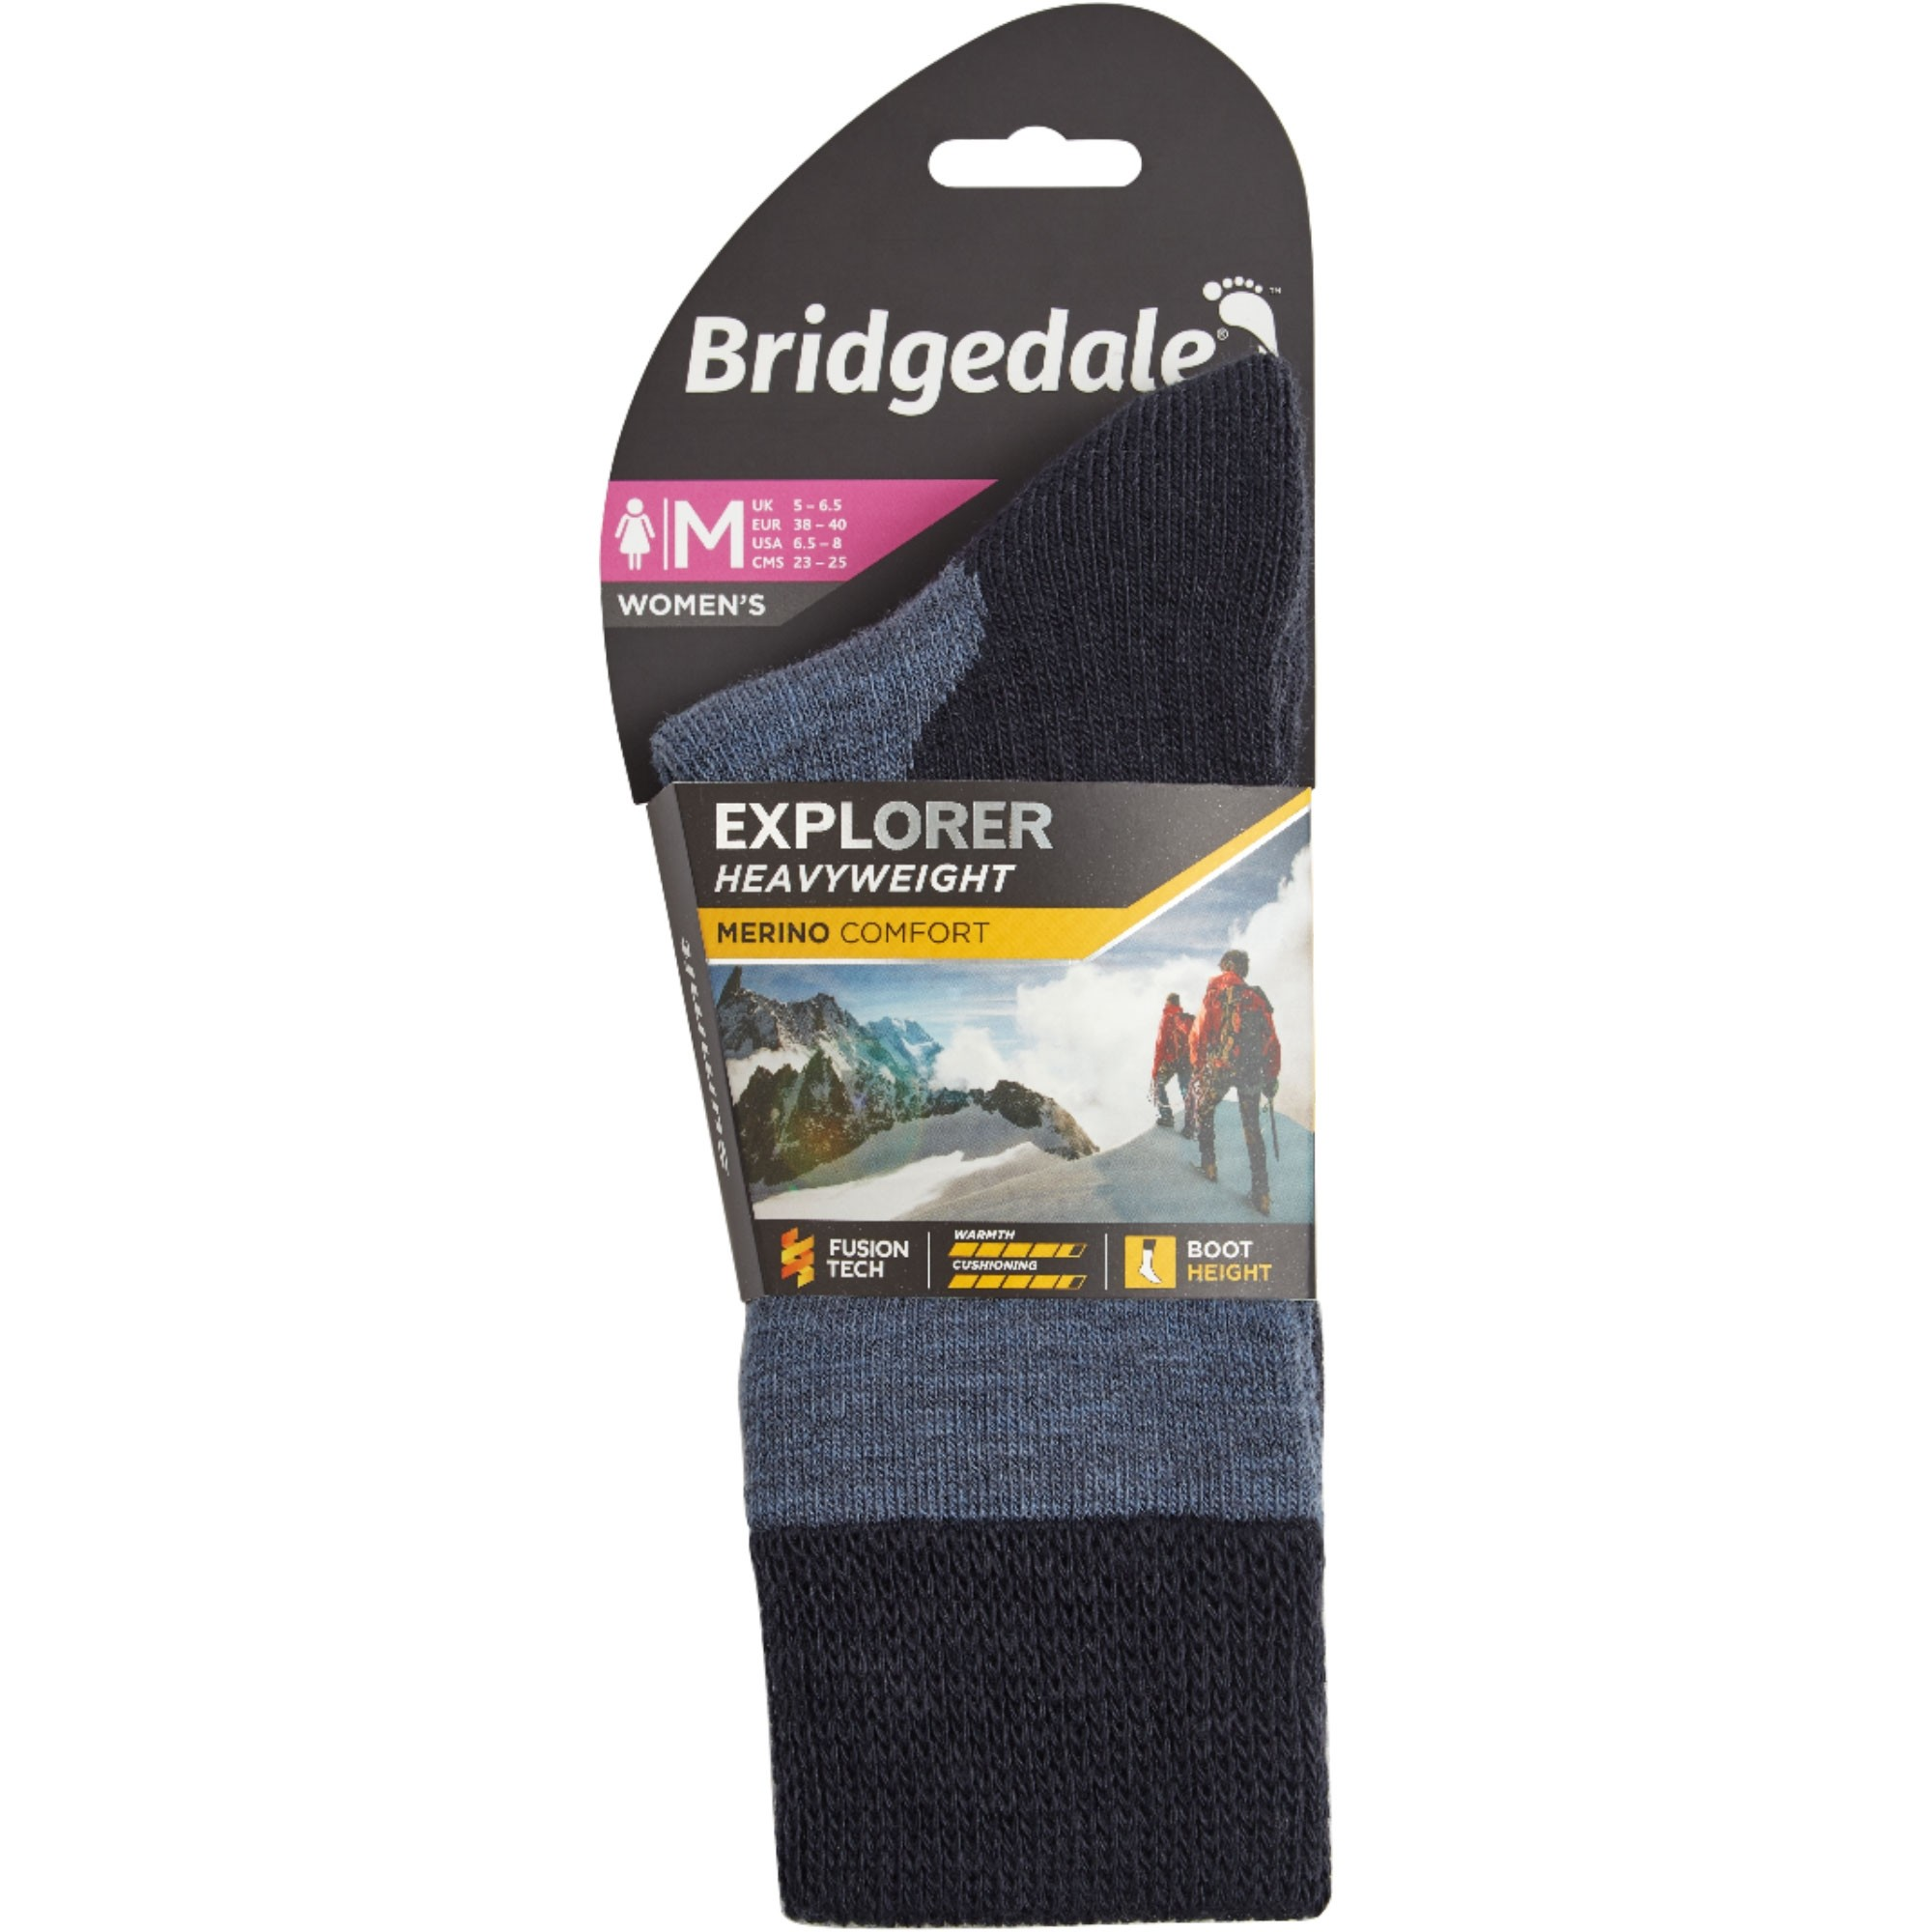 Bridgedale Explorer Heavyweight Merino Comfort Women's Socks - Storm Blue